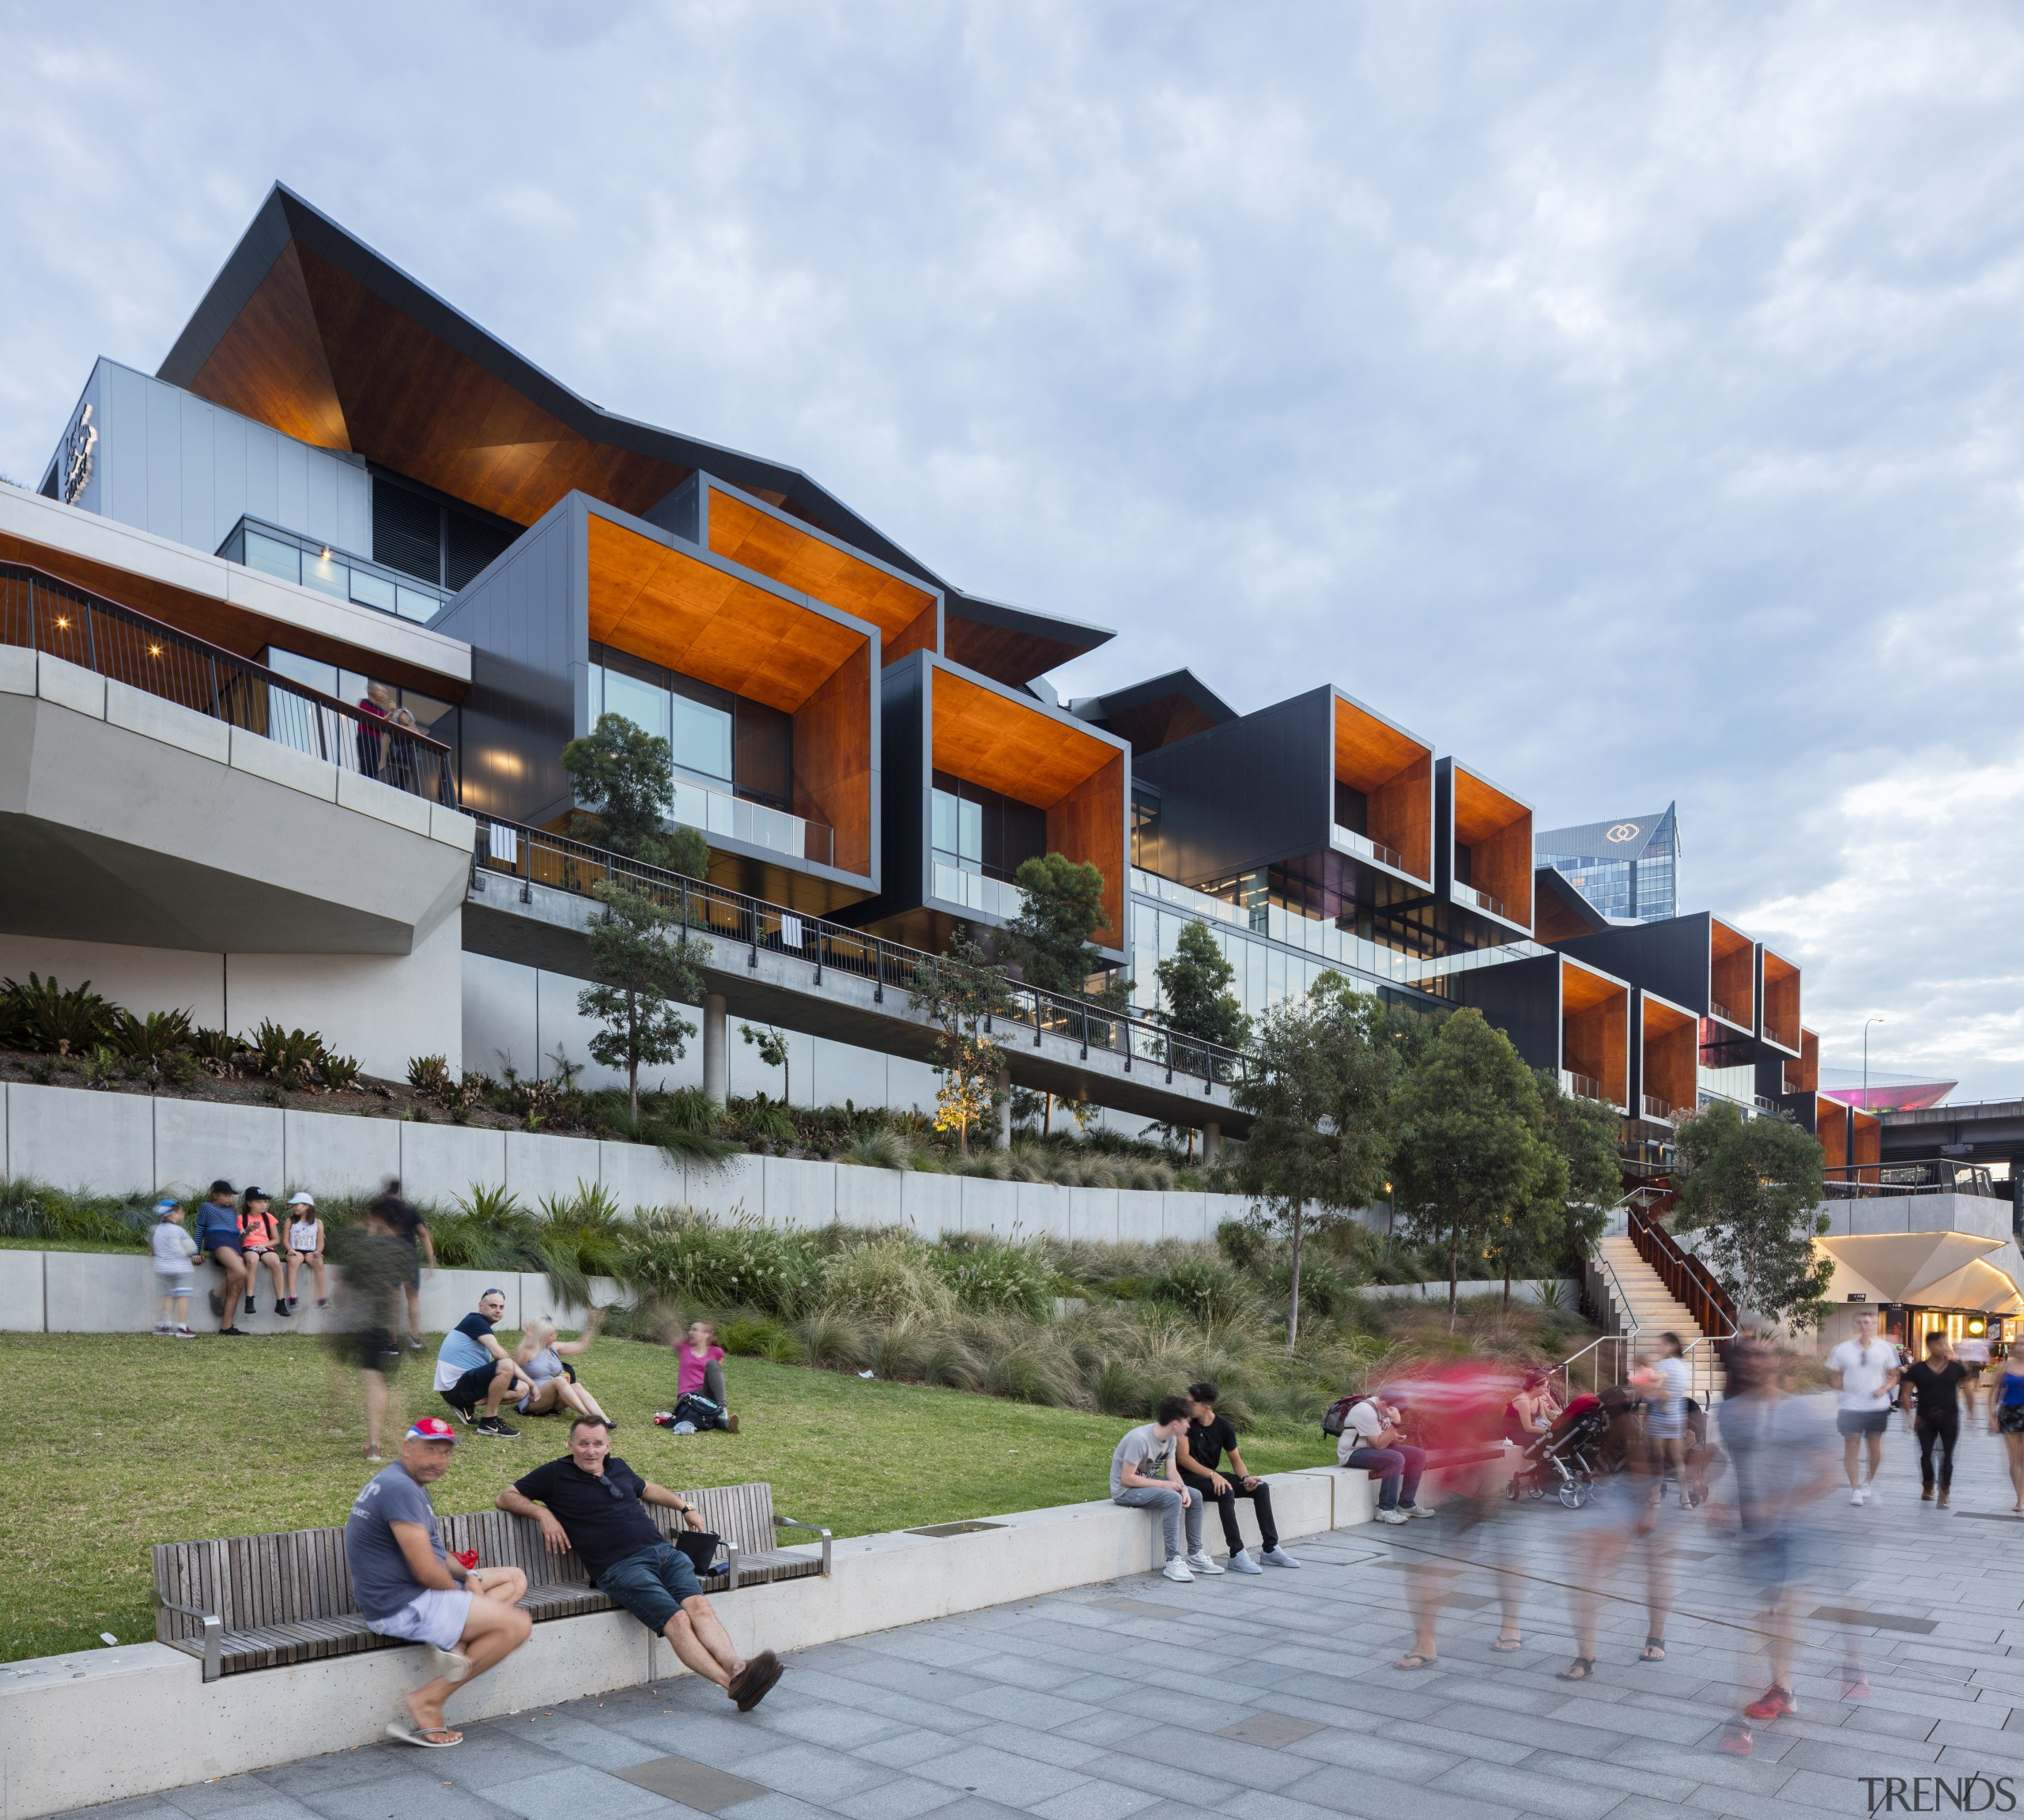 Designed by Populous and Hassell, the ICC Sydney architecture, building, city, facade, home, house, leisure, mixed-use, neighbourhood, public space, real estate, residential area, roof, sky, suburb, tourism, town, urban design, vacation, white